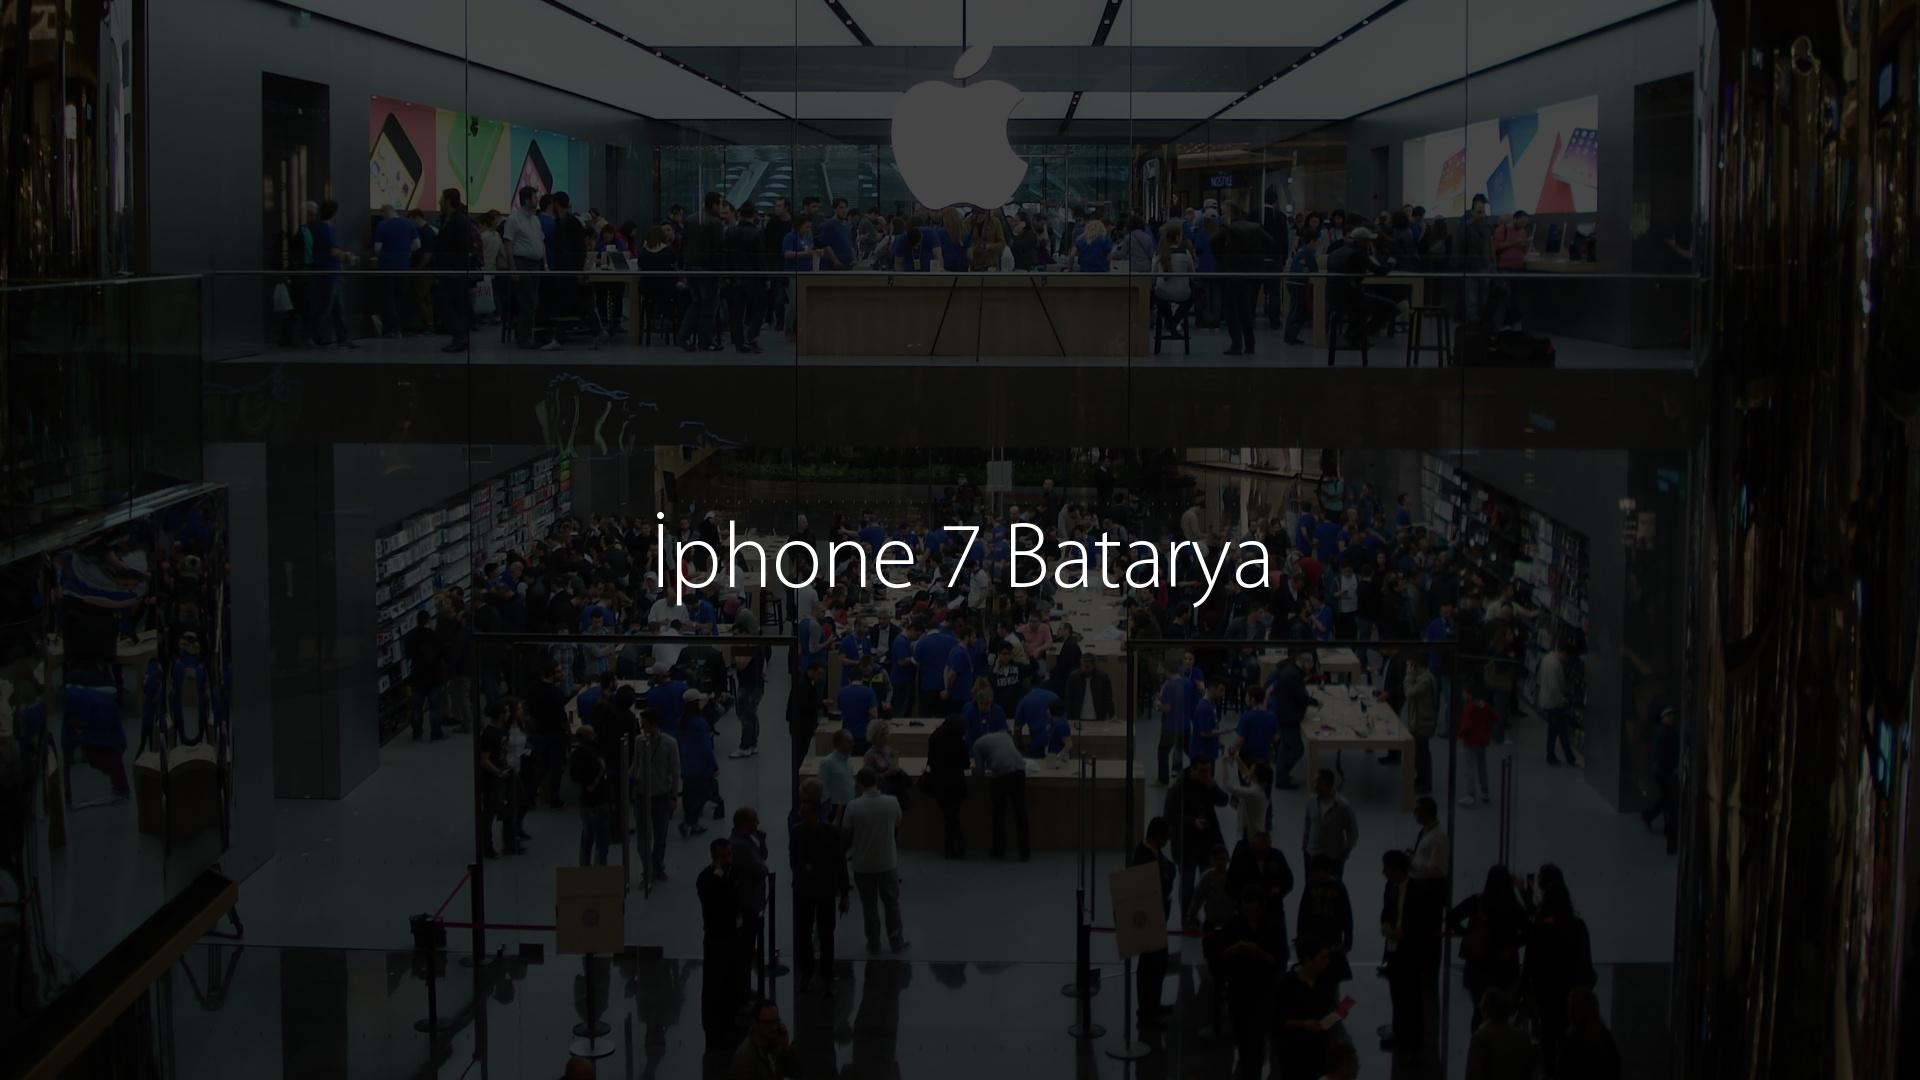 İphone 7 Batarya